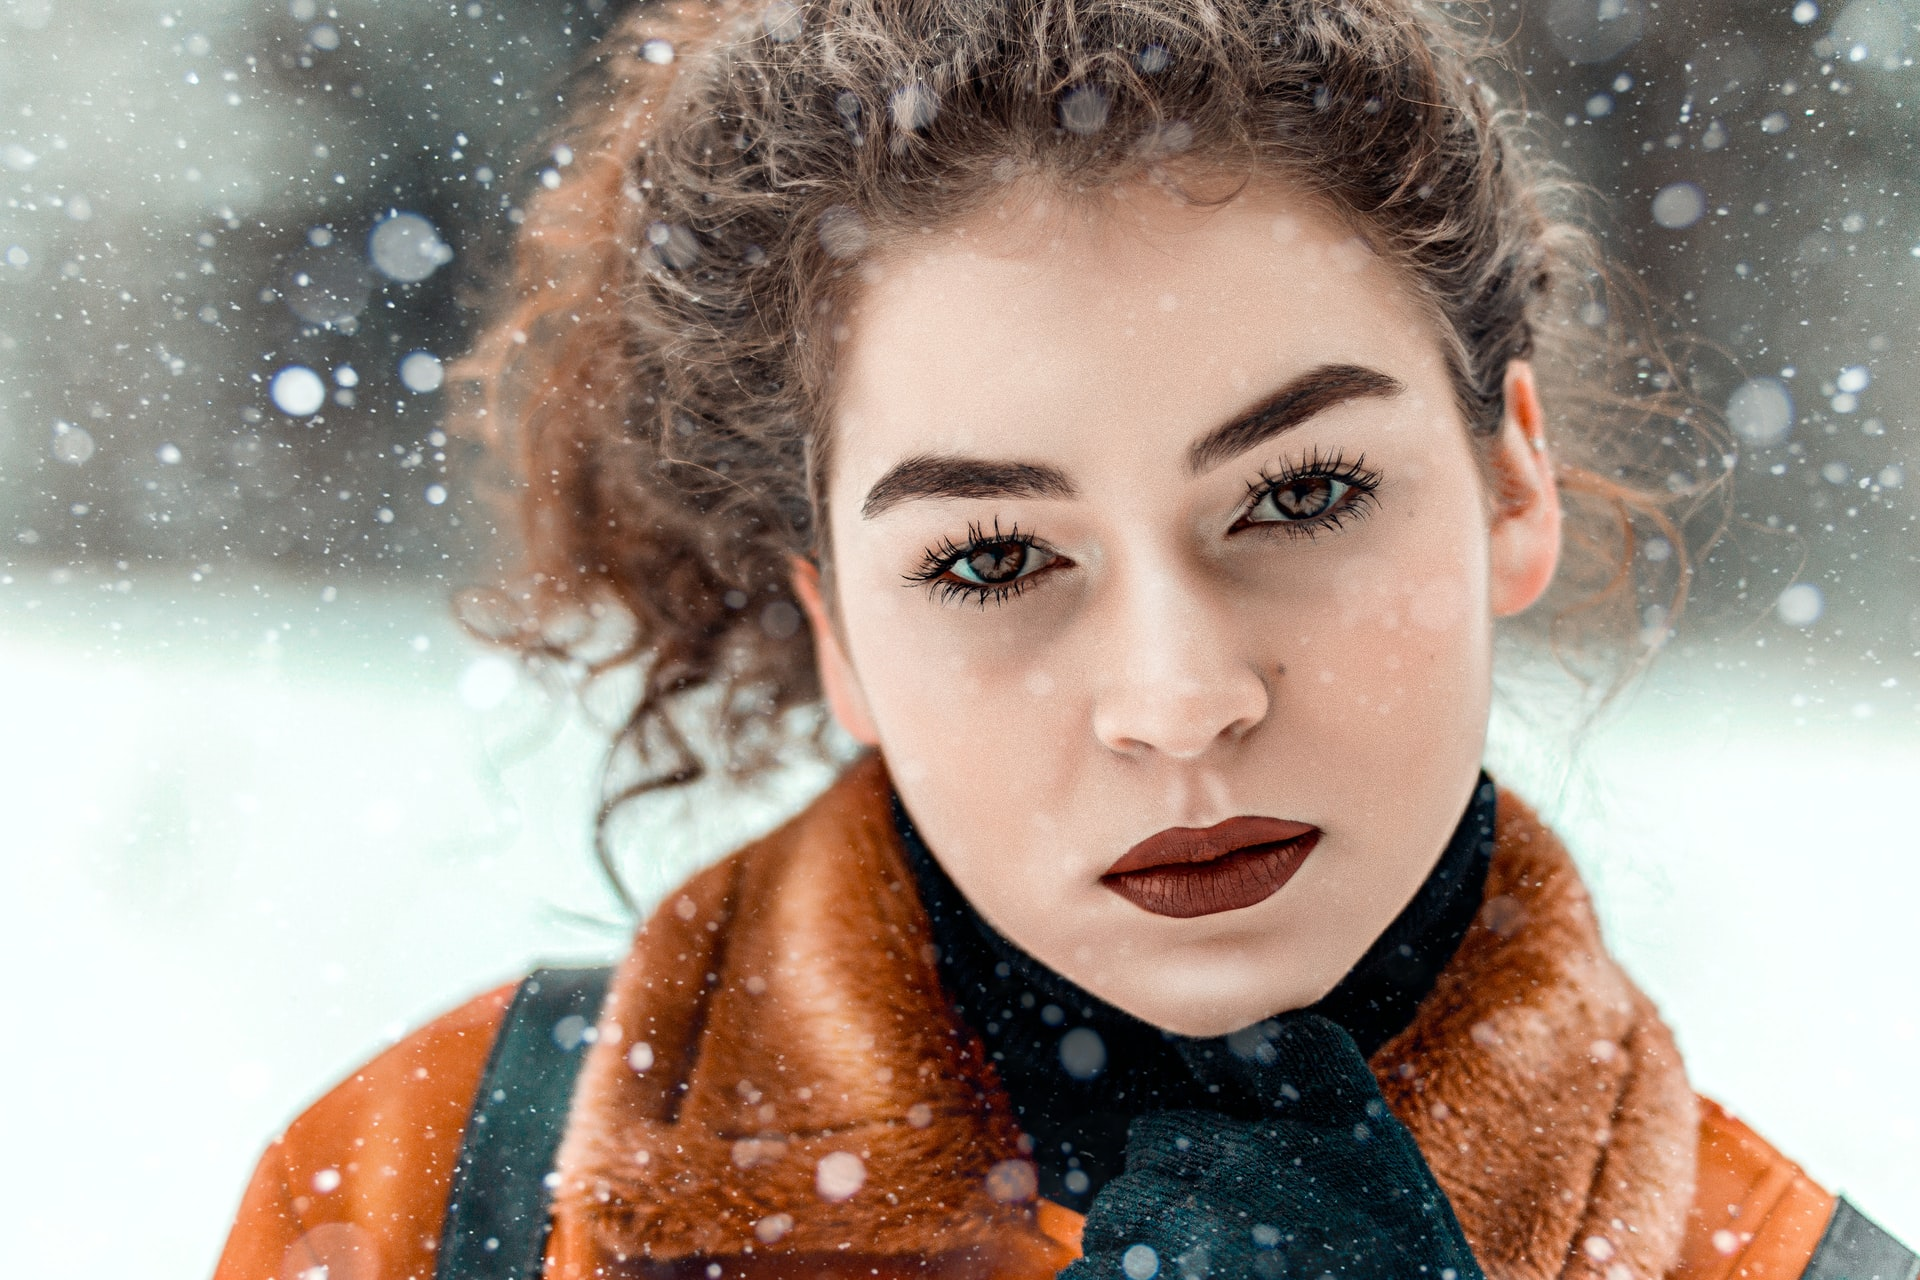 Person With Healthy Skin Looks At Camera, Snowy Background